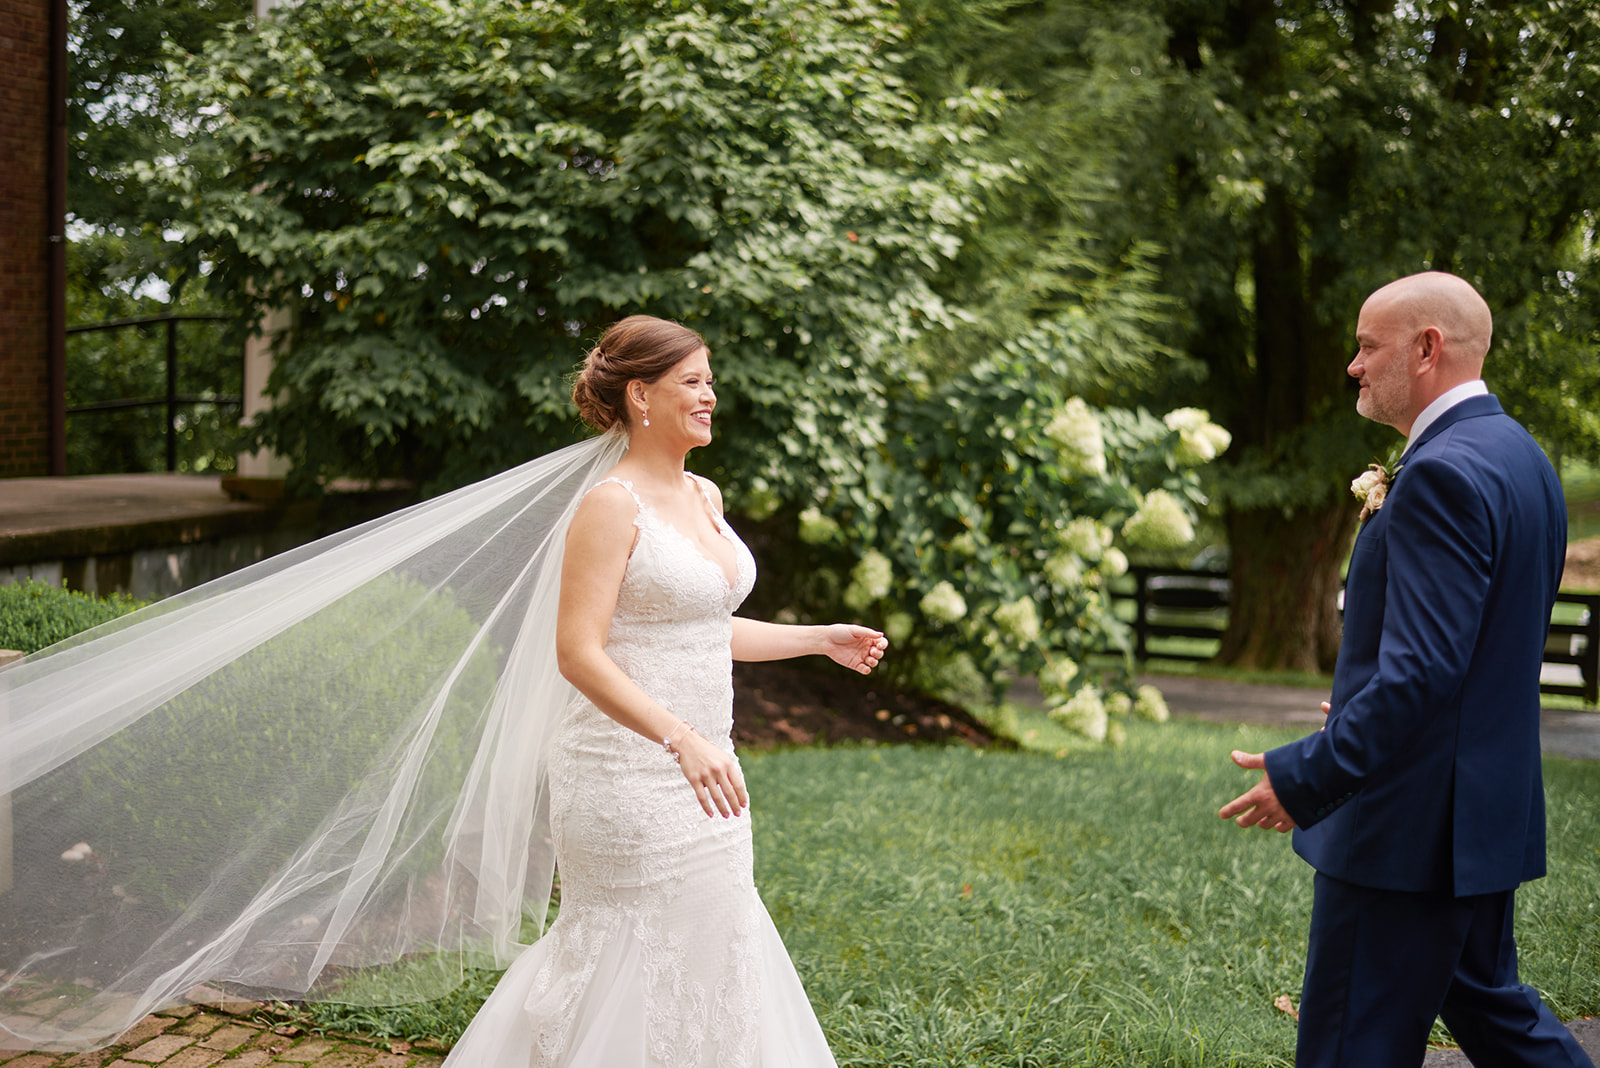 First look with bride & groom at southern glam wedding in Kentucky